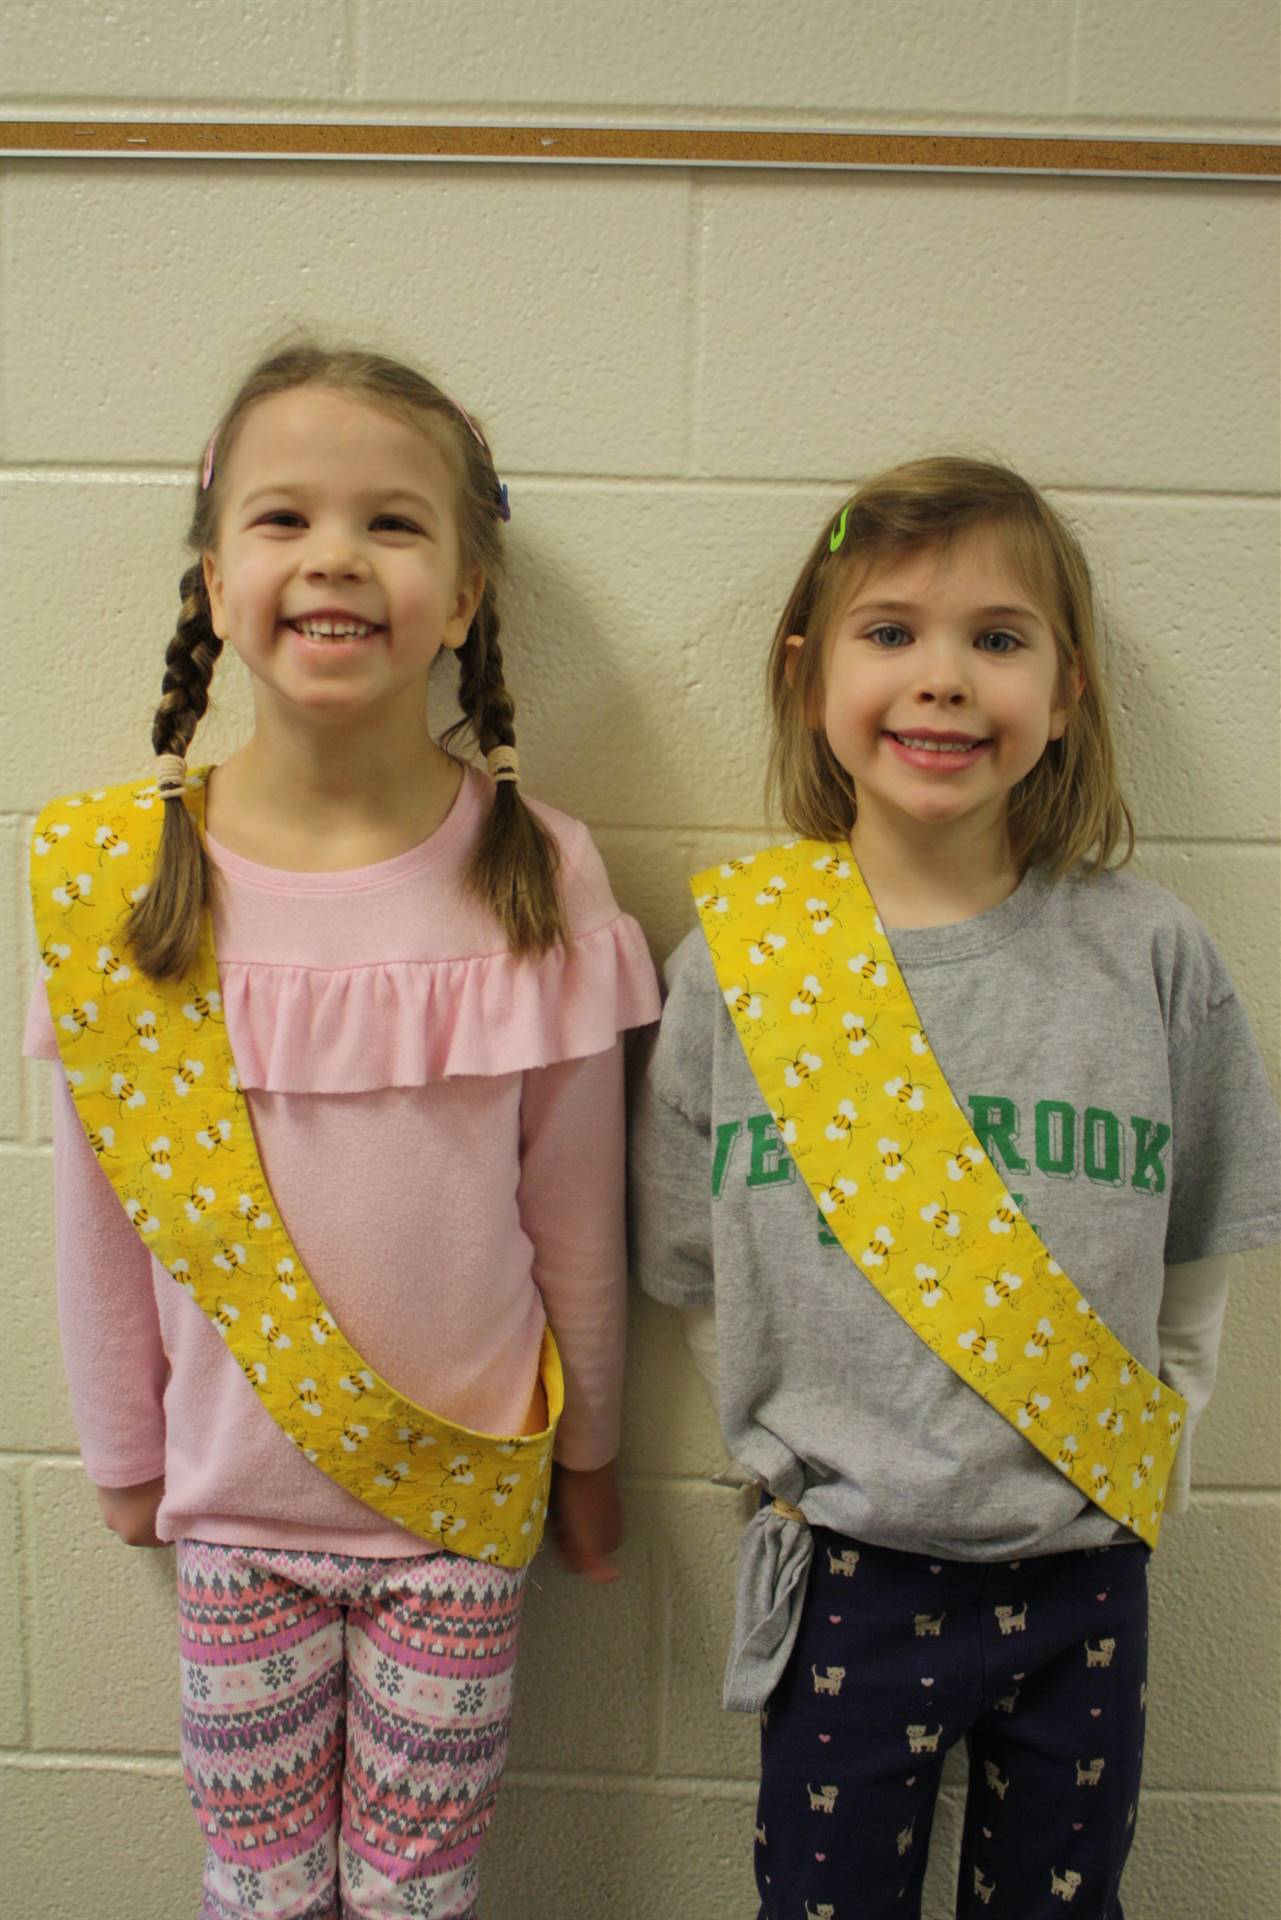 Bee Sash Winners - 2/1/2018